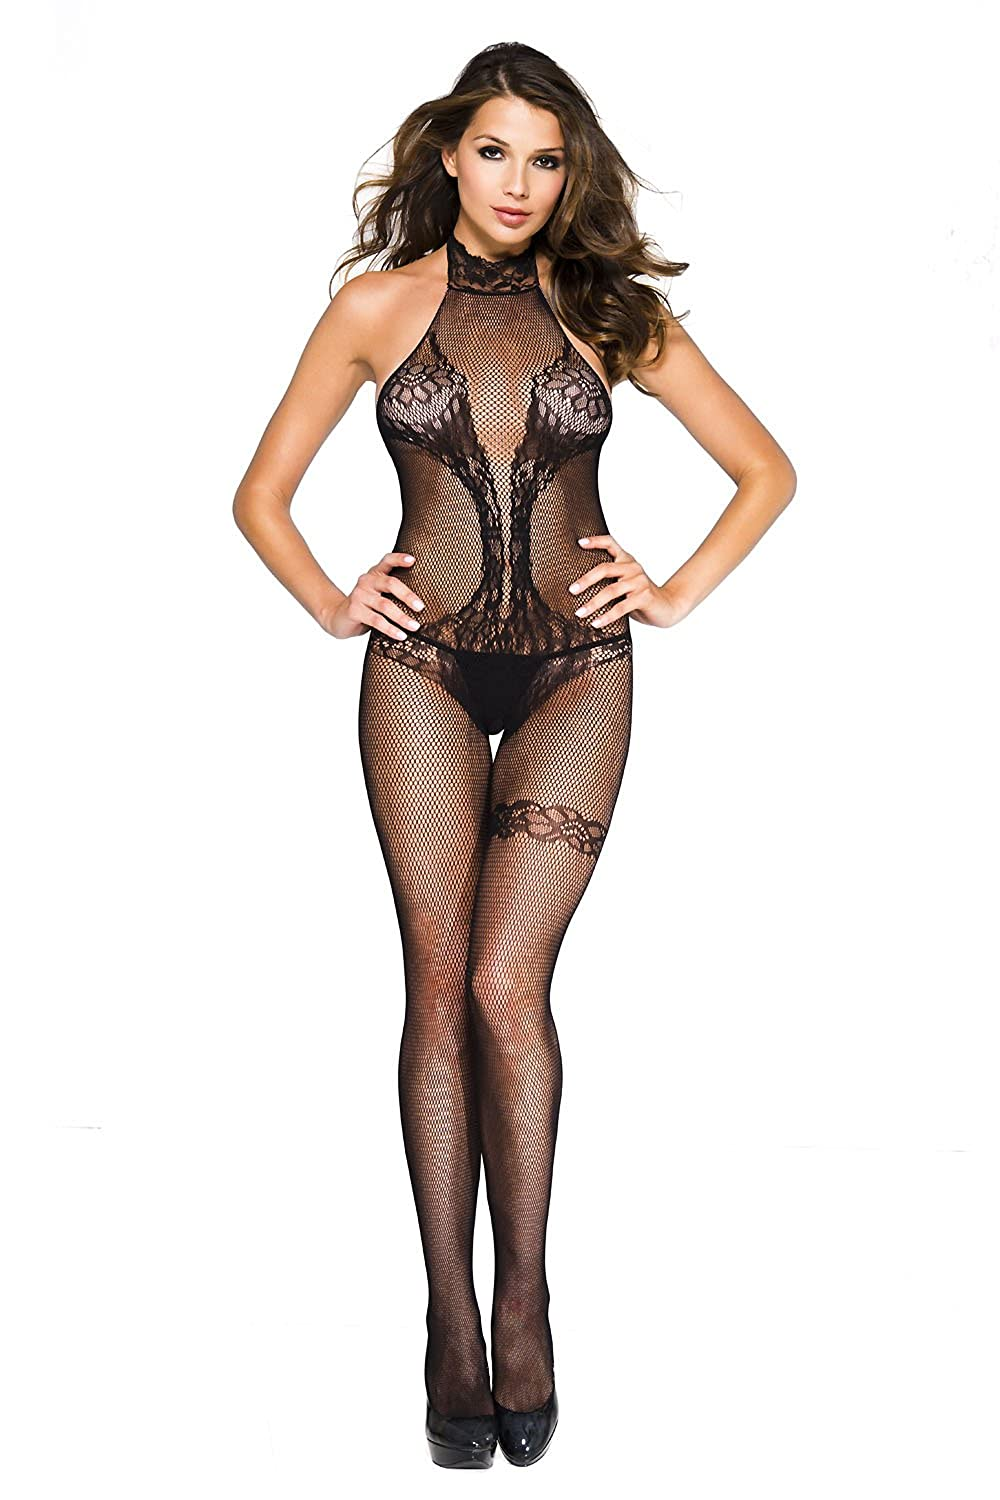 da6cd52d40ba5 Amazon.com  Music Legs Women s Fishnet Halter Neck Teddy Lace Design  Bodystocking